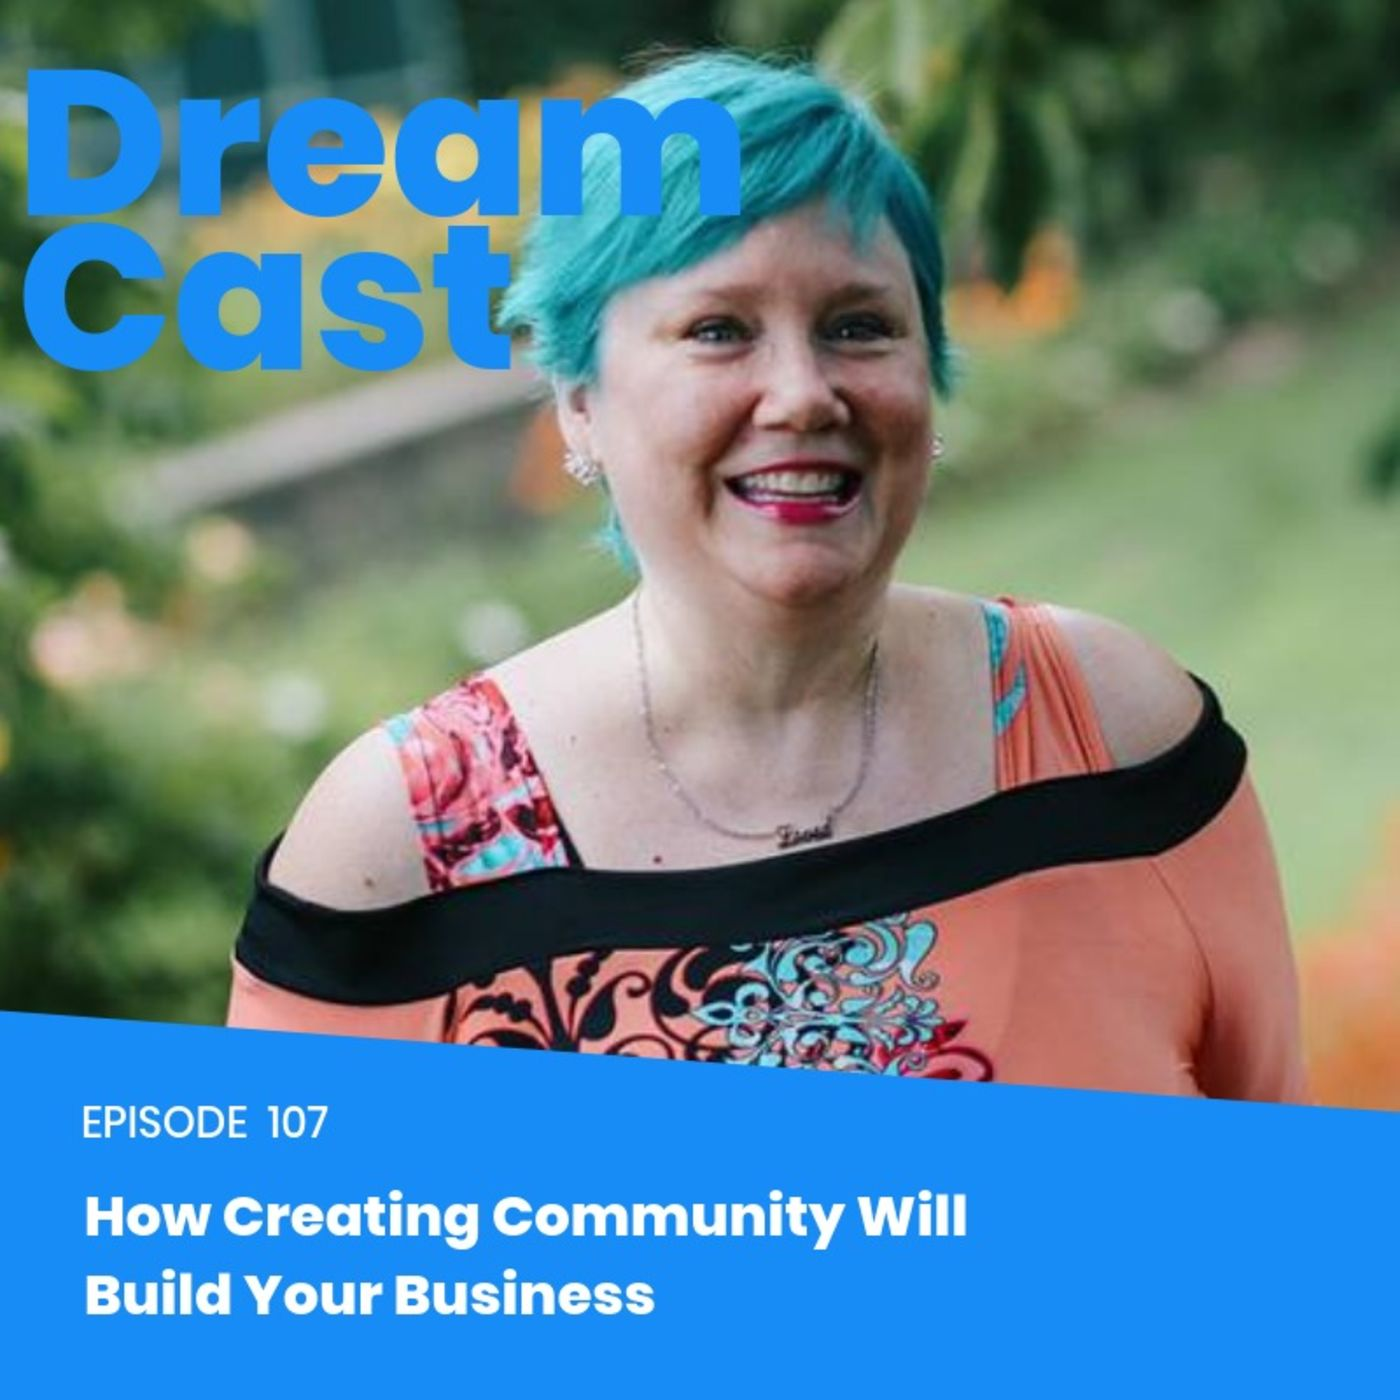 Episode 107 - How Creating Community Will Build Your Business